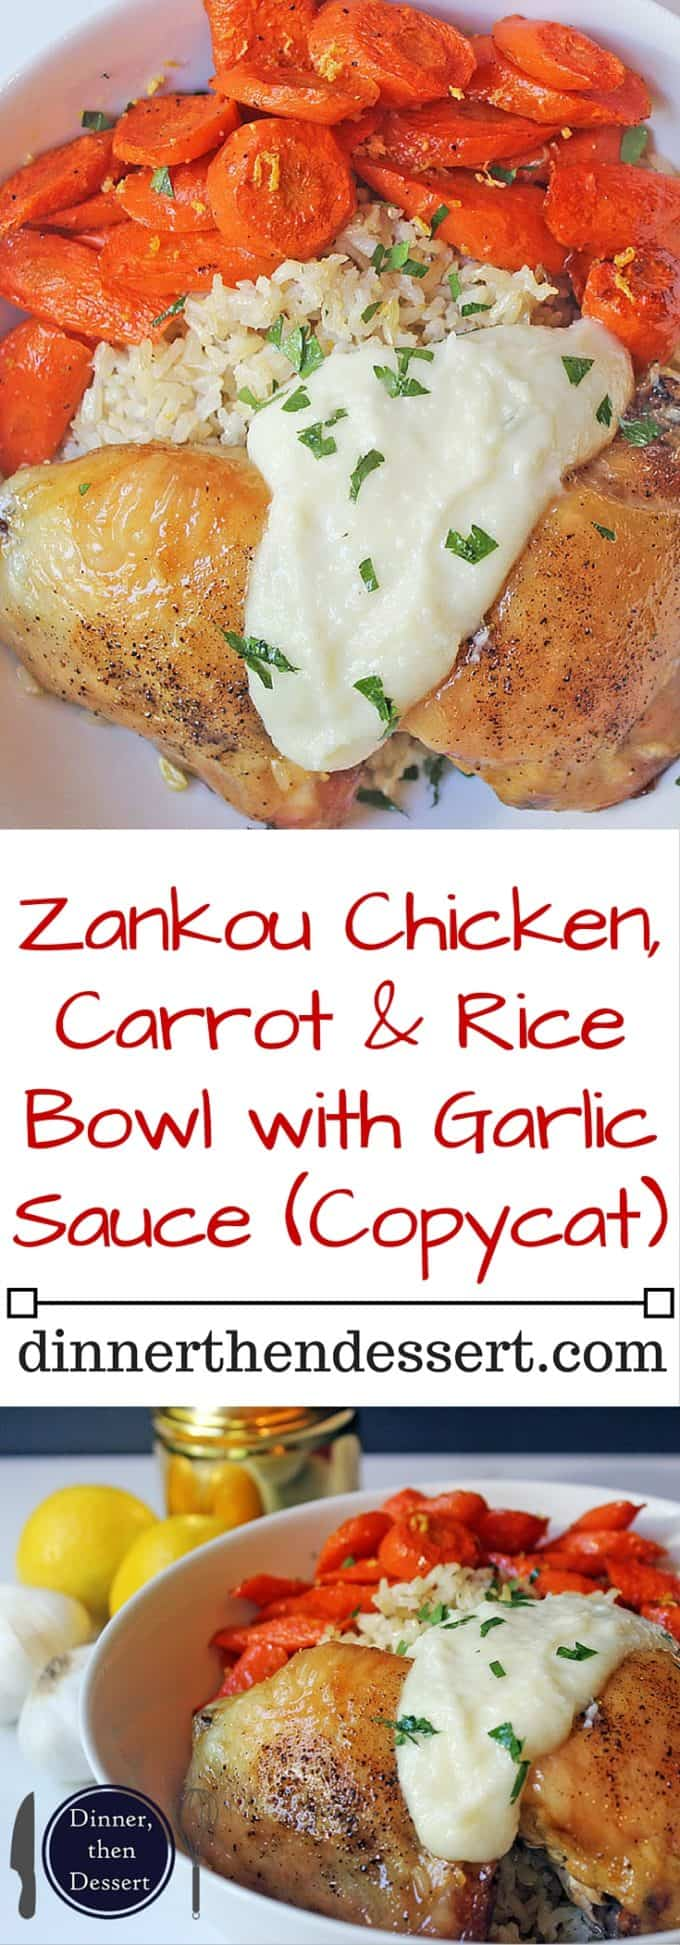 Zankou Chicken Copycat Bowl with their Chicken with Brown Rice Pilaf, Armenian Garlic Sauce & Lemon Scented Carrots.